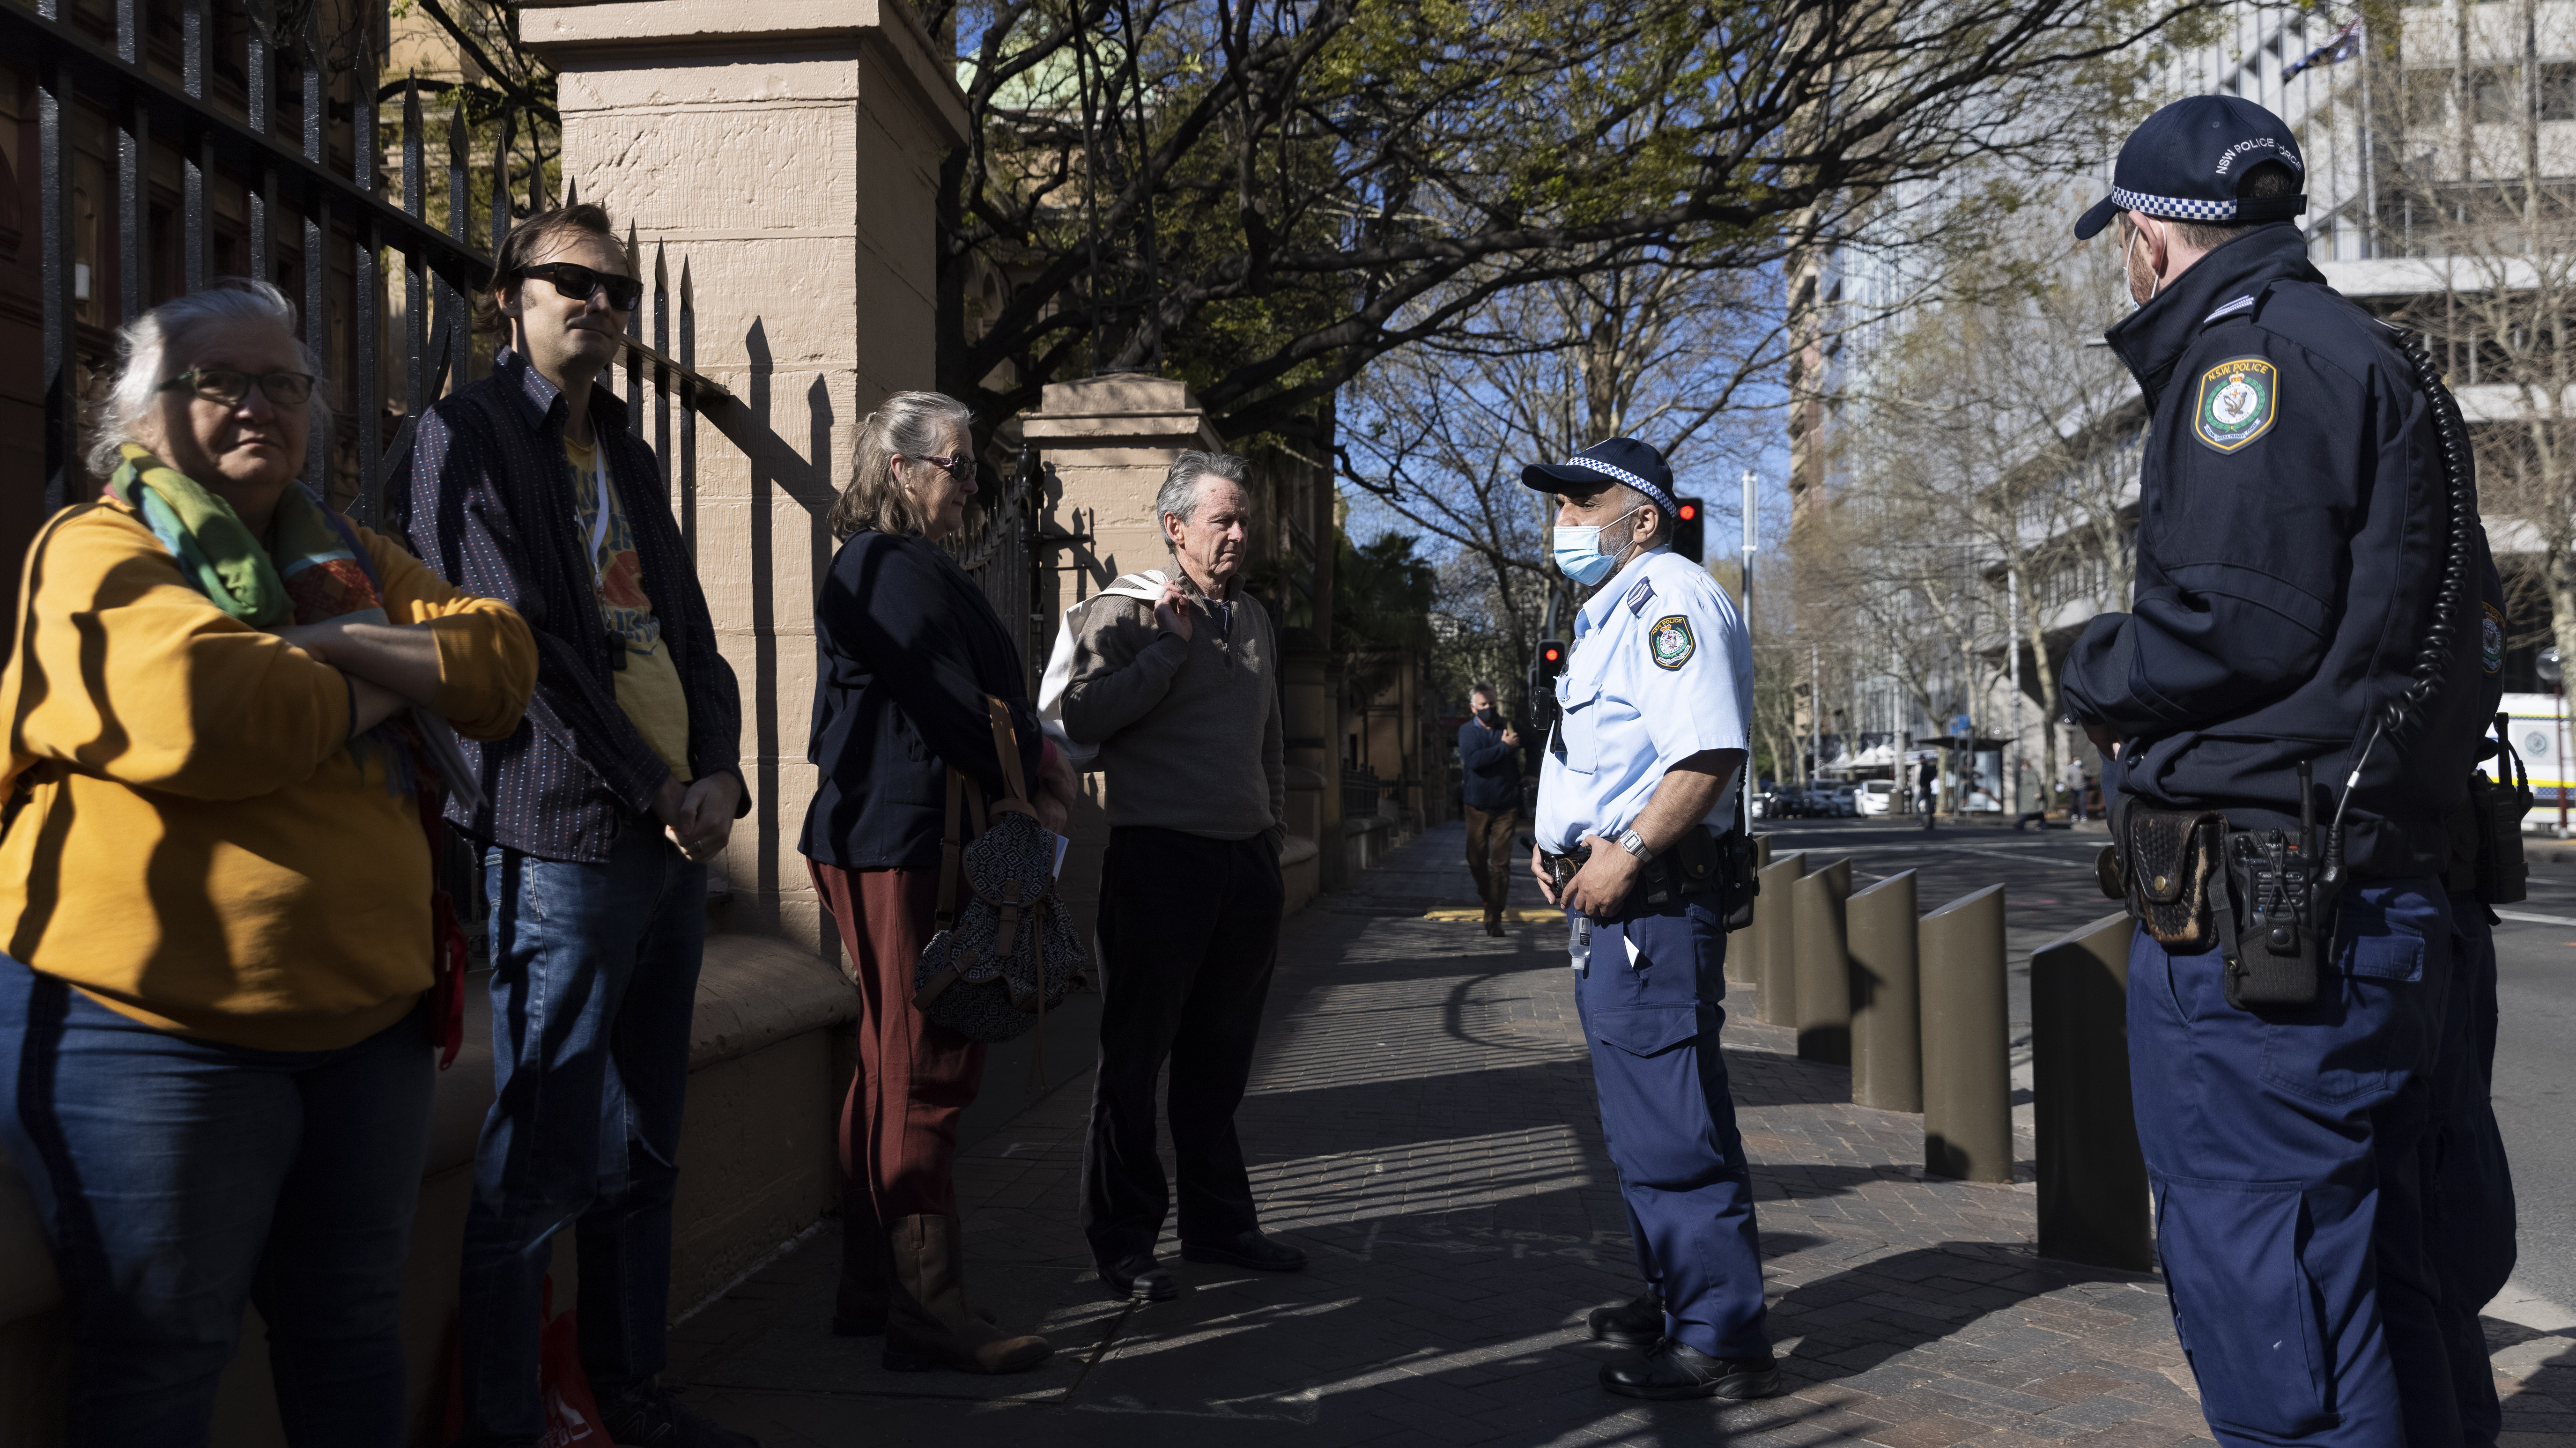 A group of protesters at the NSW Parliament